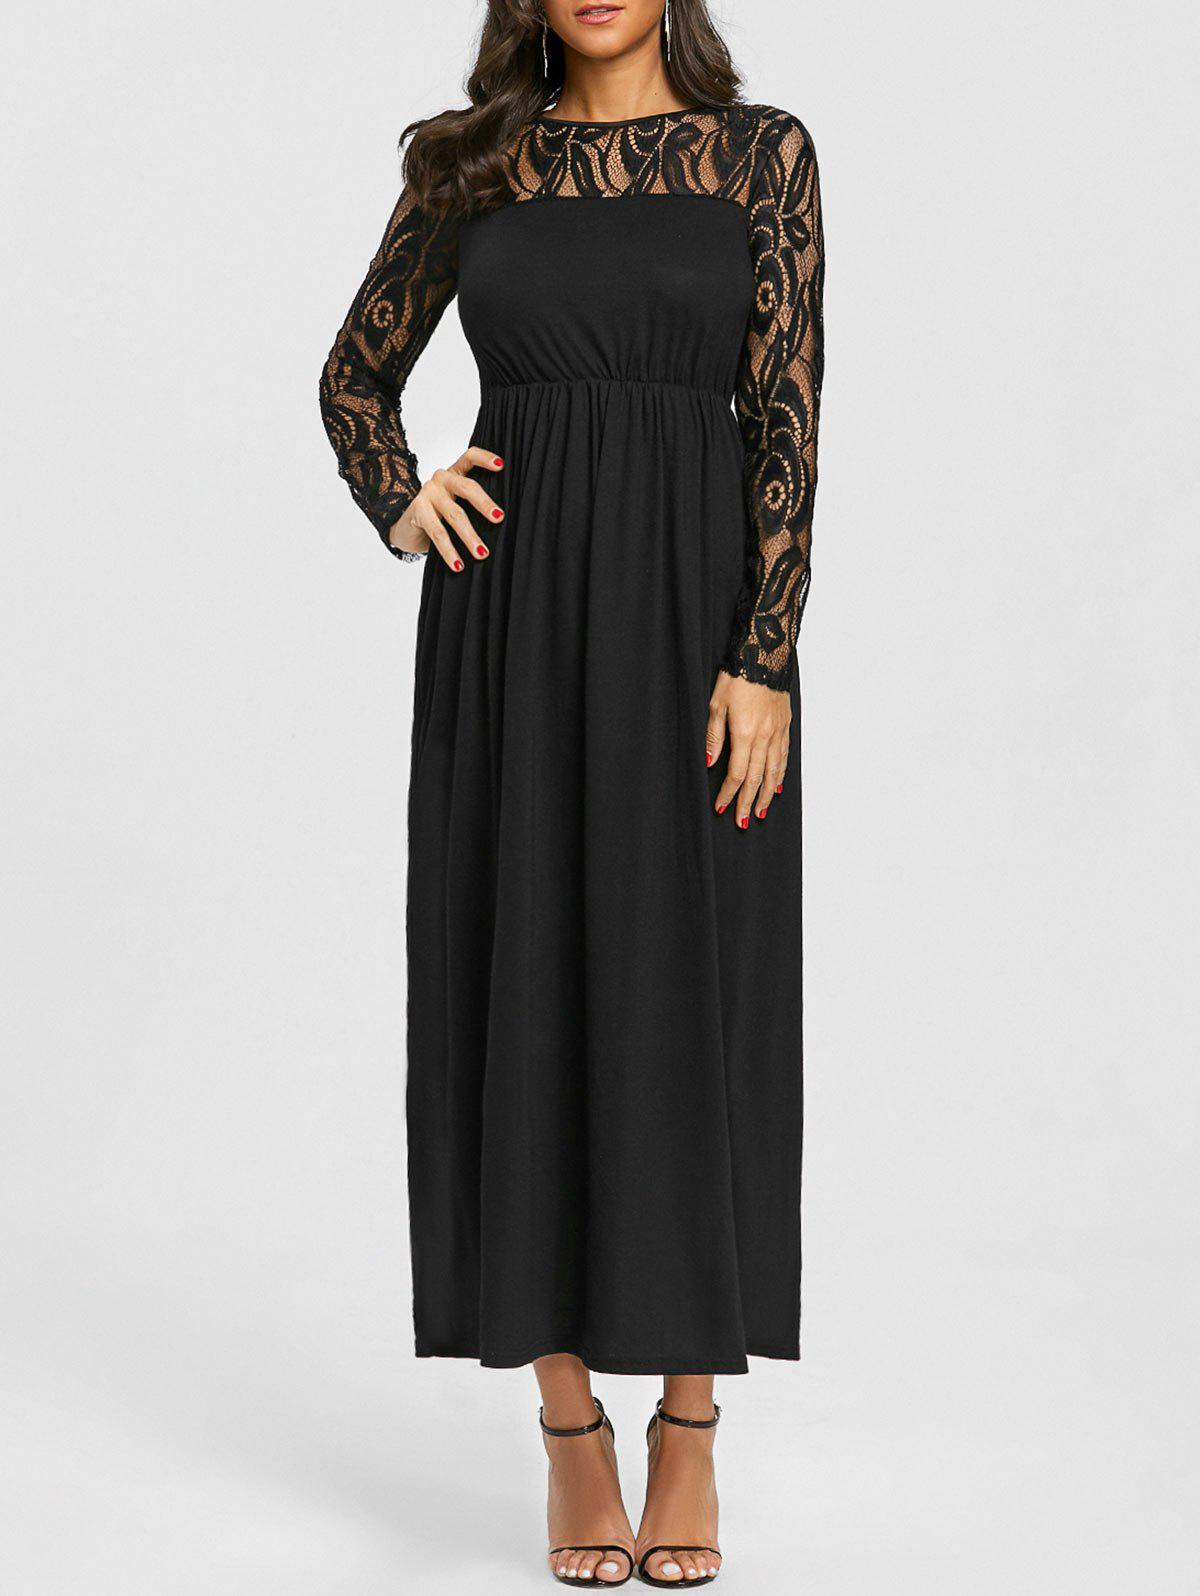 Lace Panel Empire Waist Dress - BLACK XL